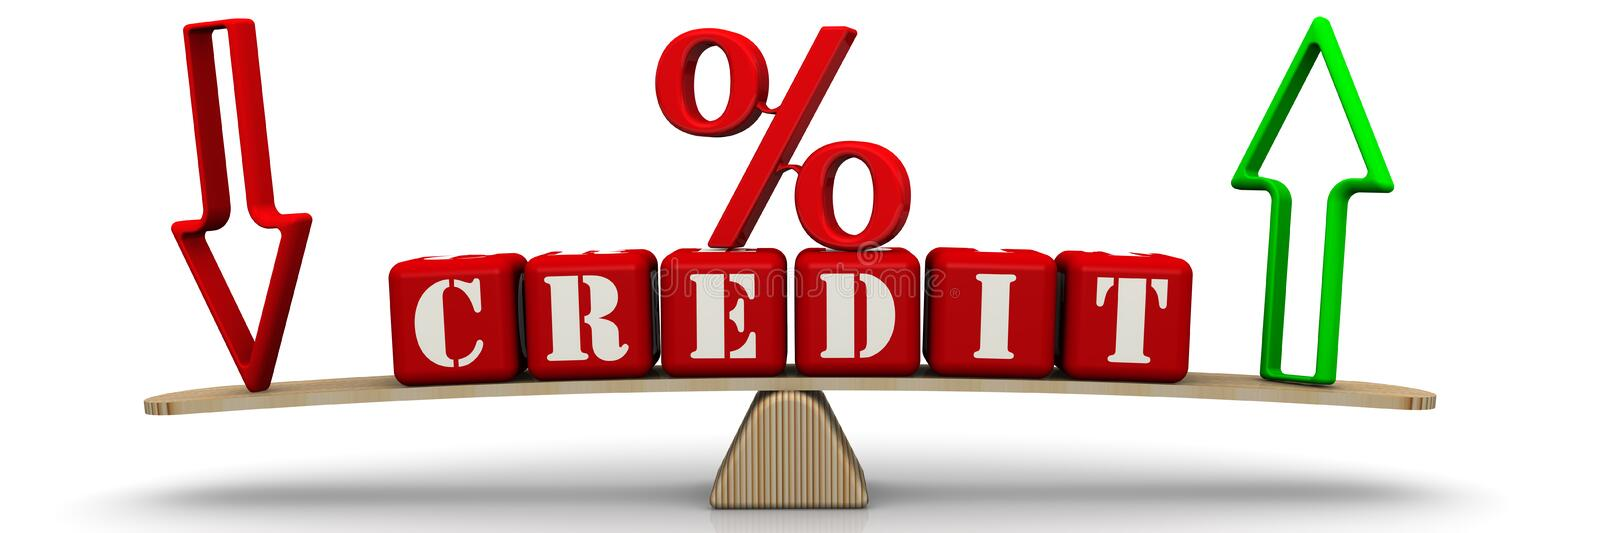 Change in credit percentage. Red percentage sign, downwards and upwards arrows and word CREDIT made from red cubes labeled with letters are weighed on the scales stock illustration